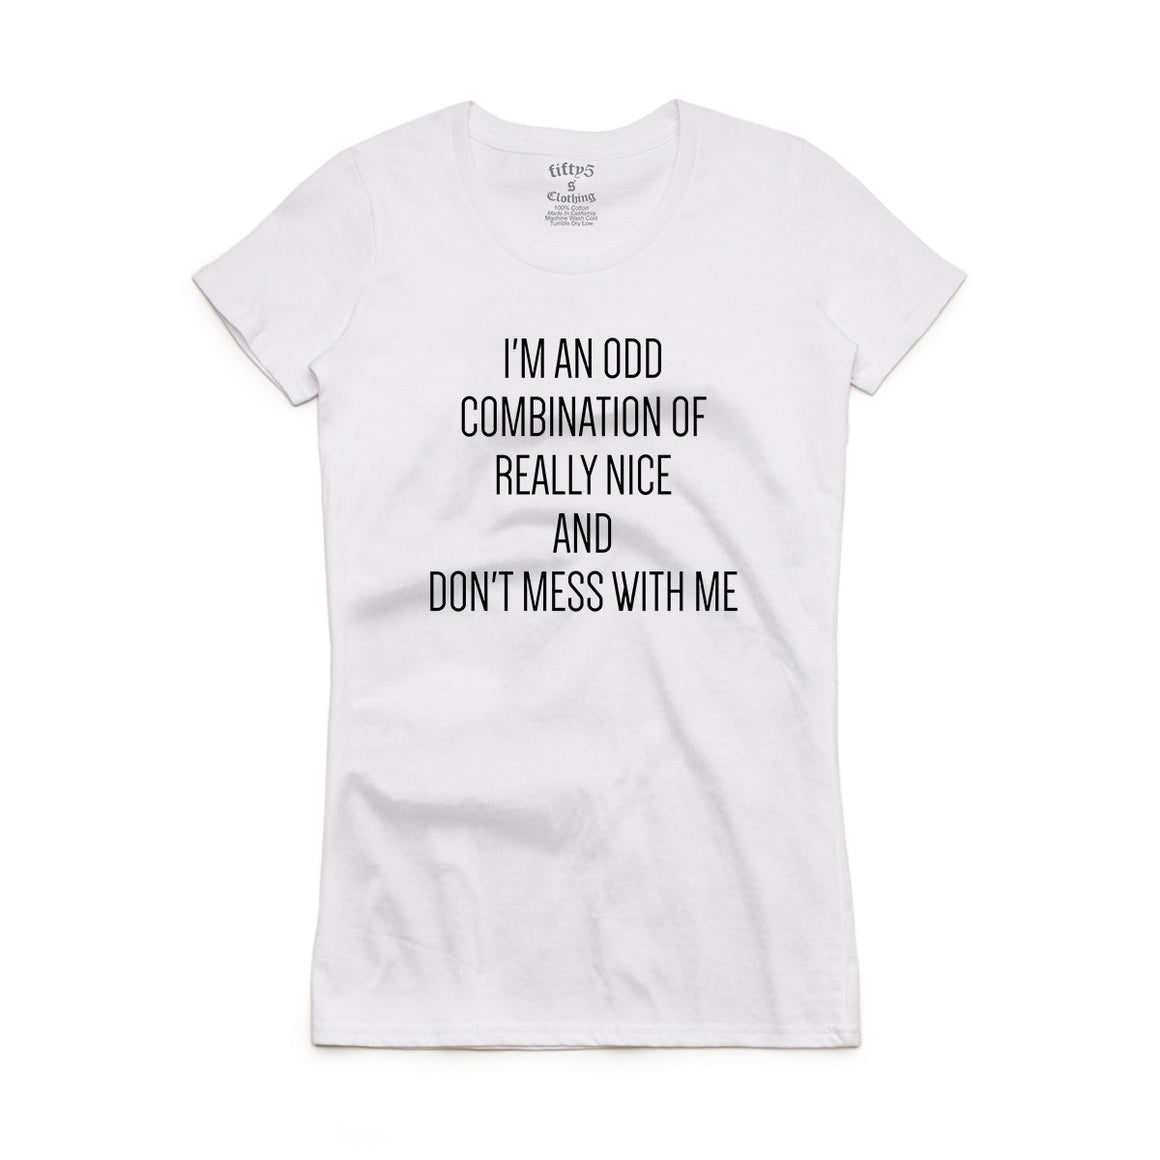 Fifty5 Clothing Don't Mess With Me Women's Crew Neck T-Shirt